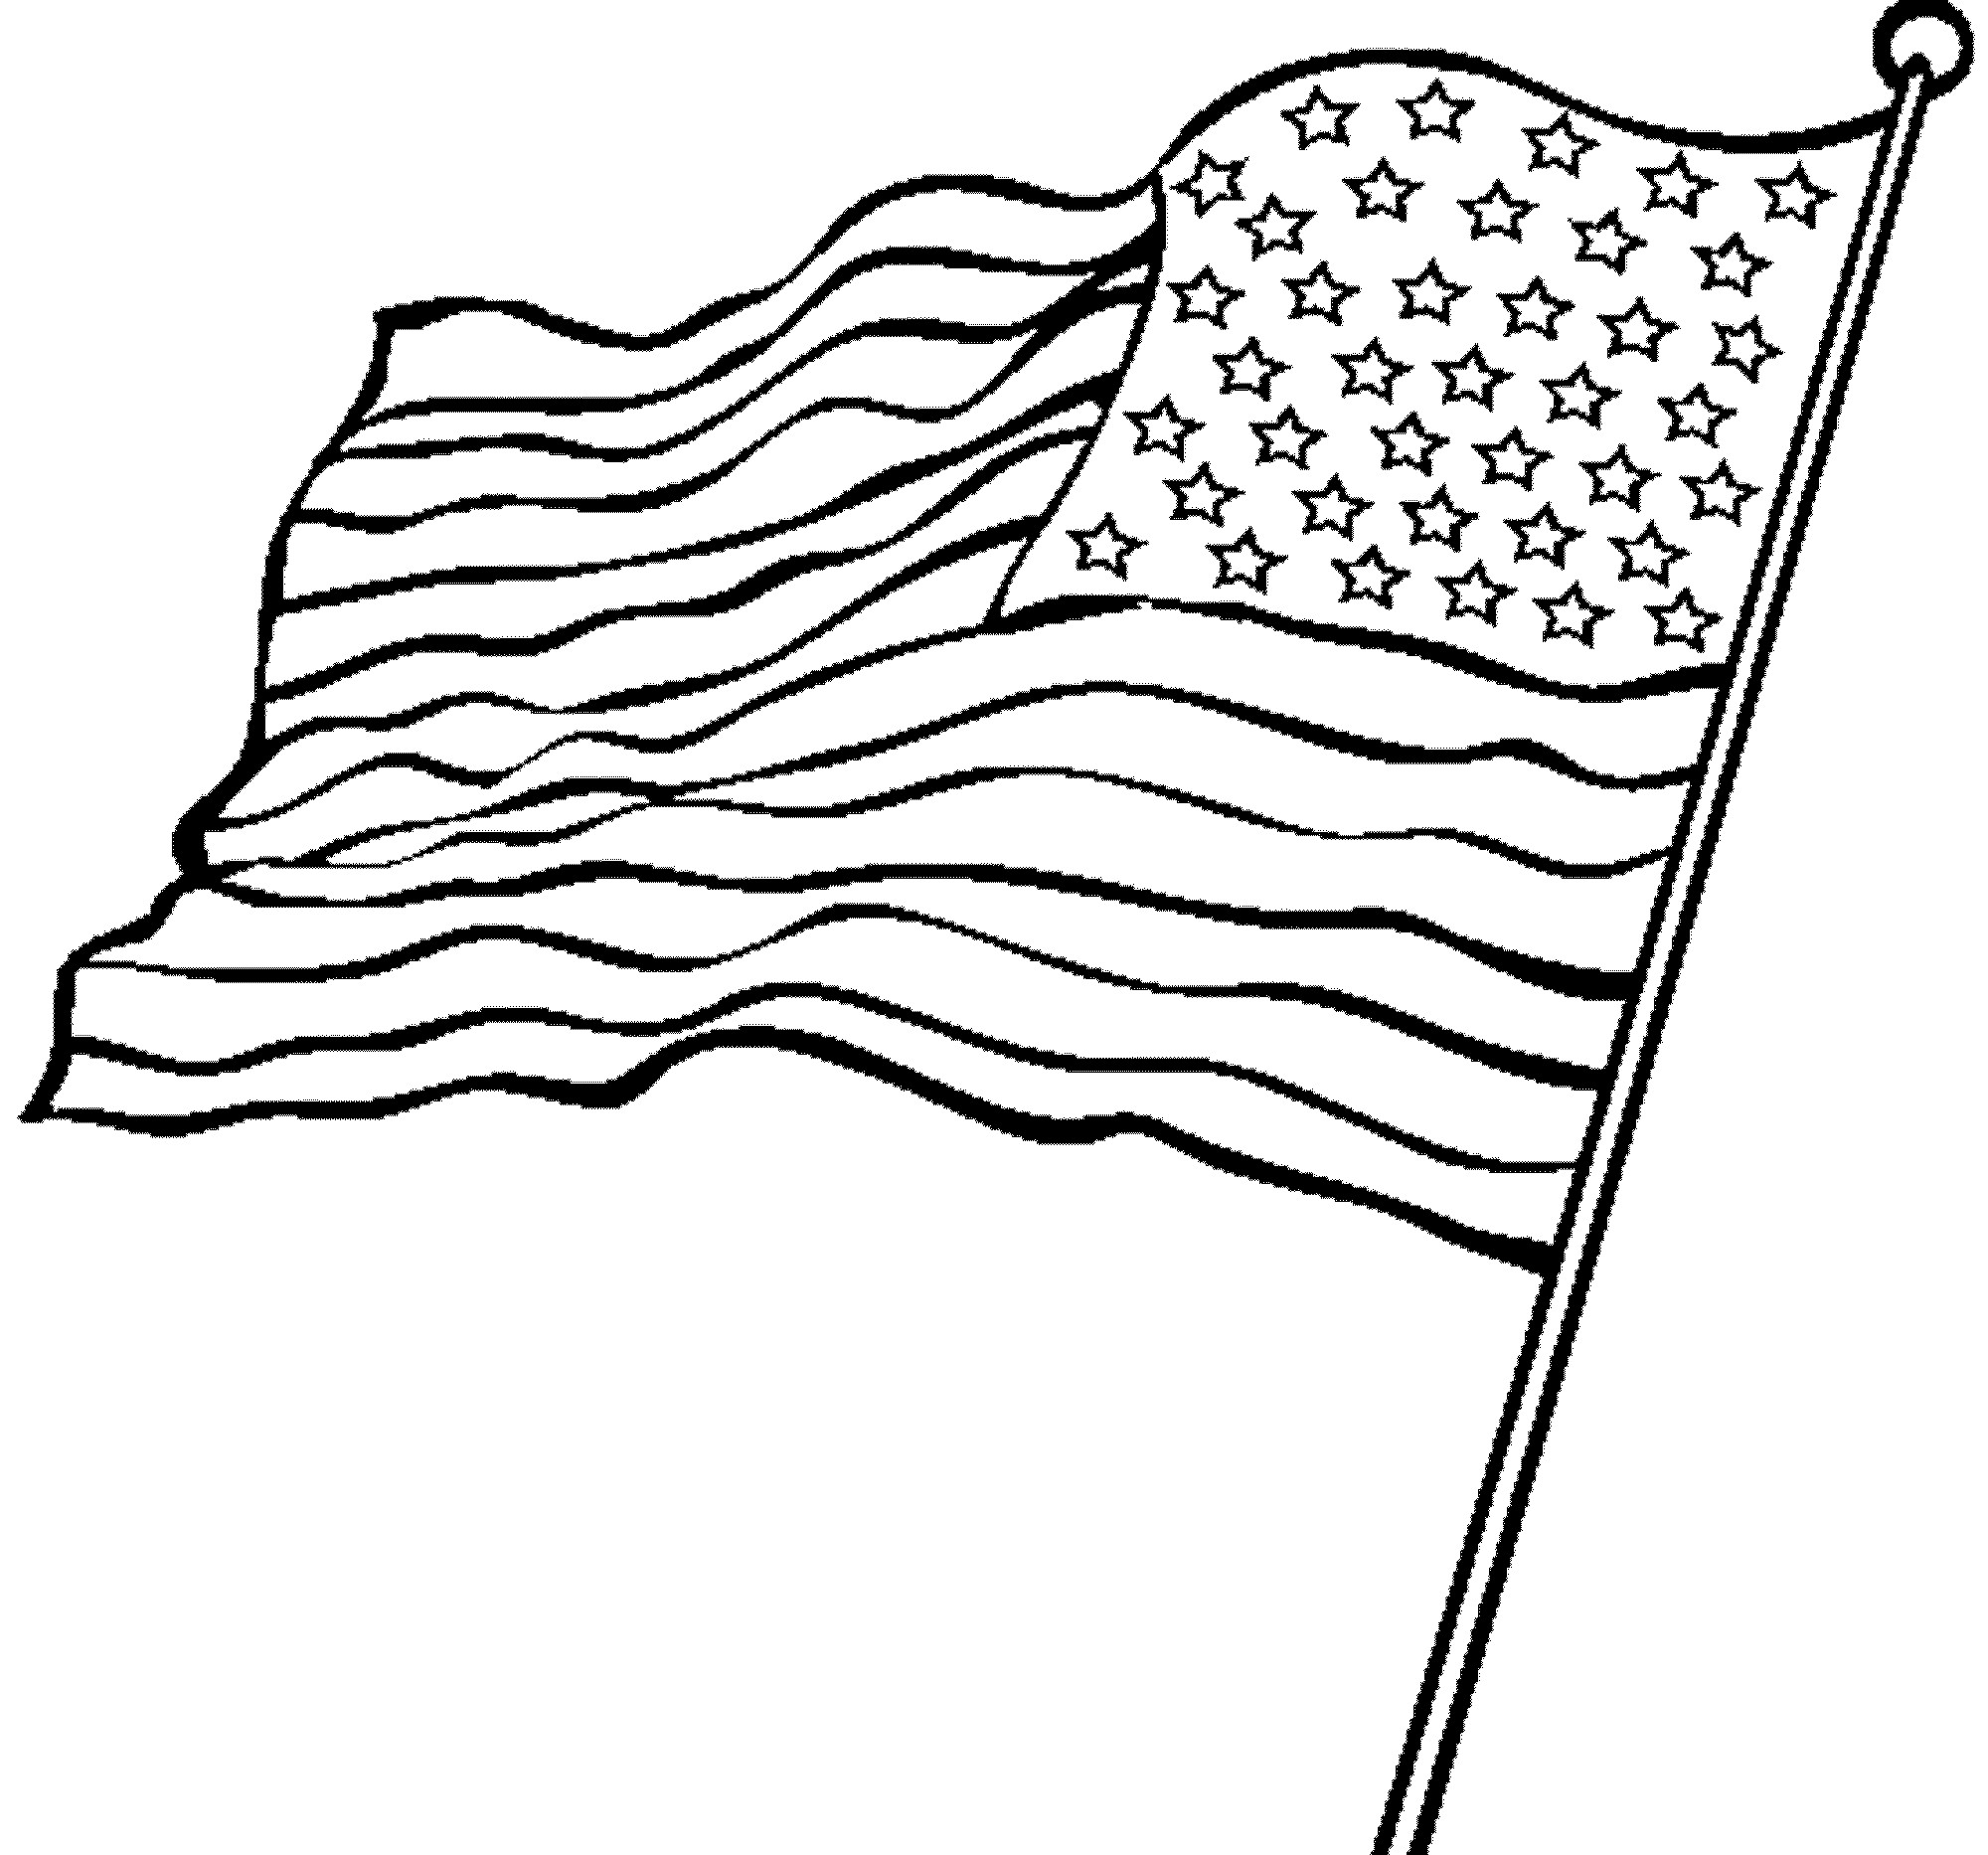 2000x1866 Two Usa Flags Coloring Pages Unique Map Of The Usa Coloring Page